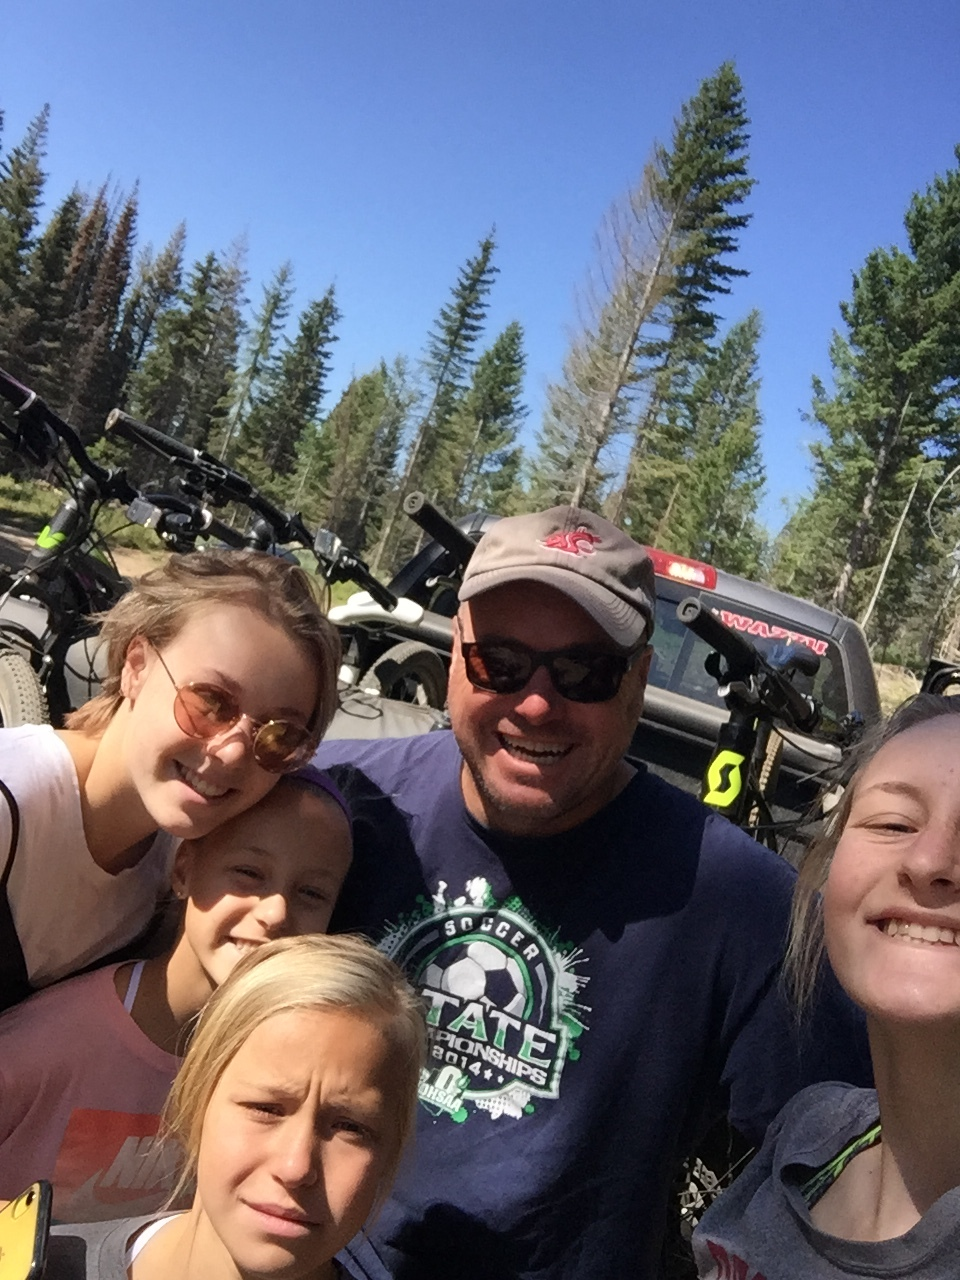 Rodney Auth poses with his family during their trip to Bear Basin.